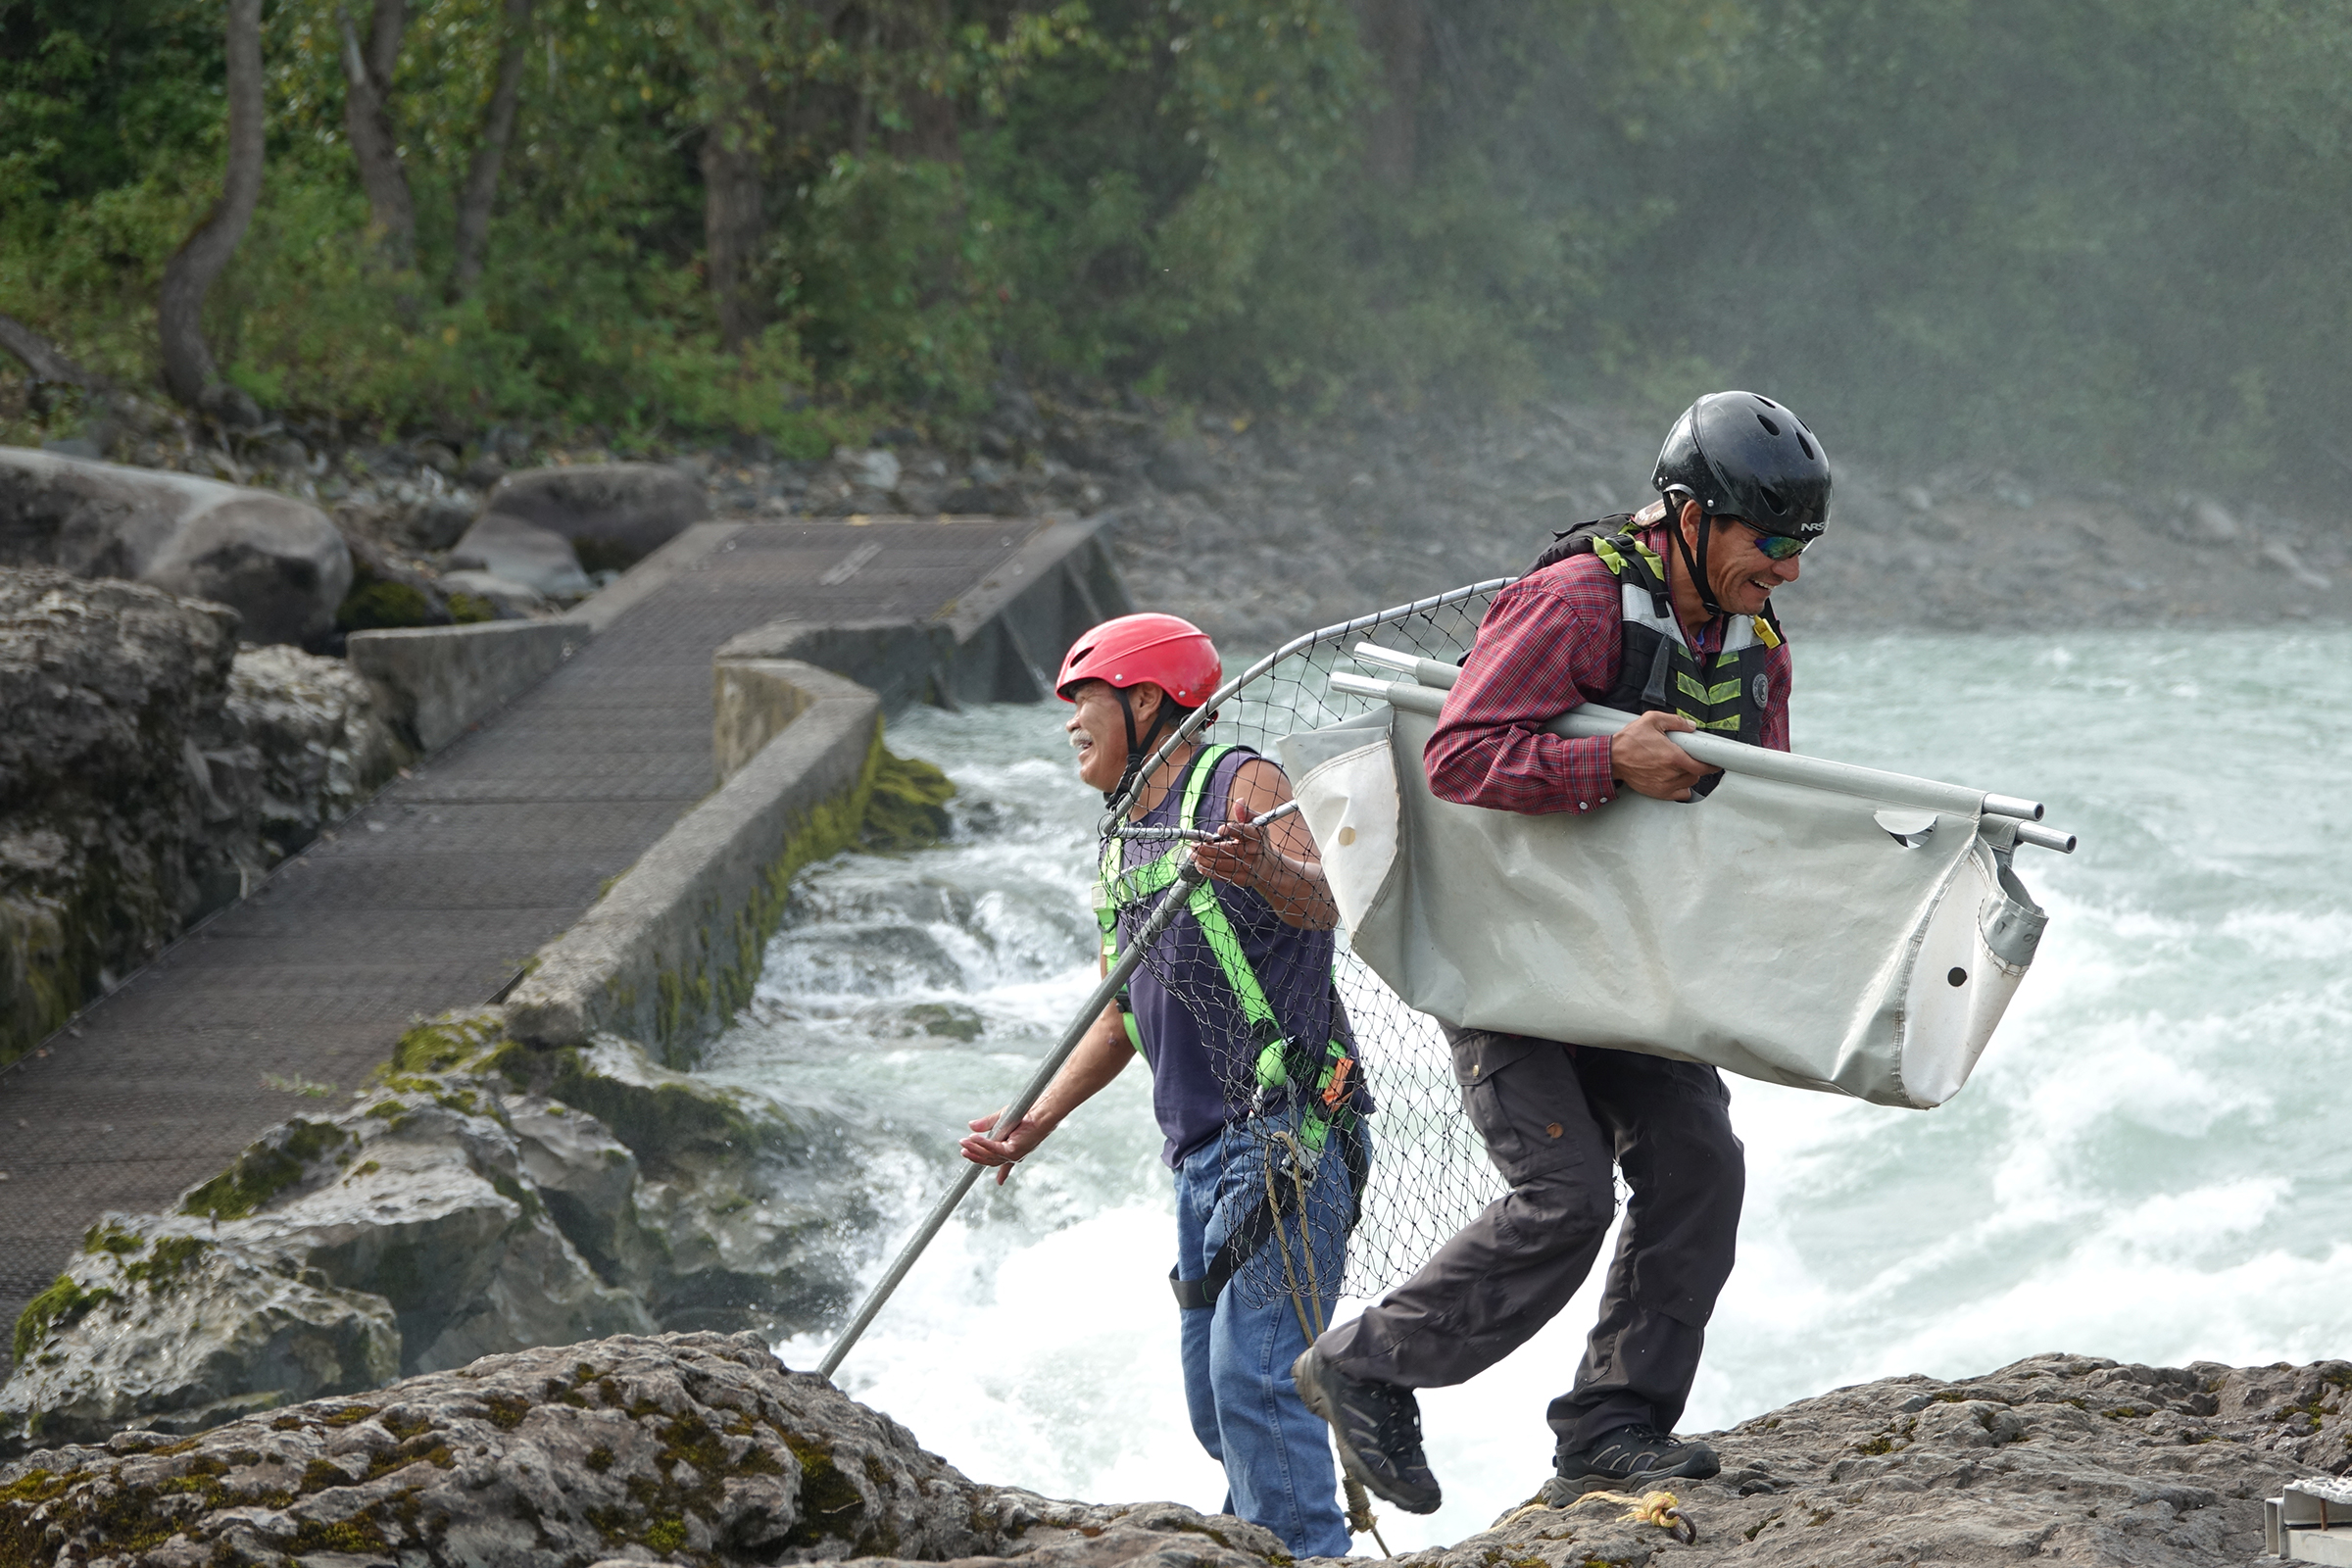 Wet'suwet'en First Nations fishermen Willie Pete (left) and Fabian Alfred (right) smile following the capture of a salmon at Witset canyon on the Bulkley River, a tributary of the Skeena River in Northern British Columbia. Traditional capture from rocks beside the rapids requires agility and skill to net salmon mid-leap. This salmon is being carried in a cradle to a research table where it will be measured, weighed, tagged, and then released into the waters above the rapids. Photograph by Lesley Evans Ogden